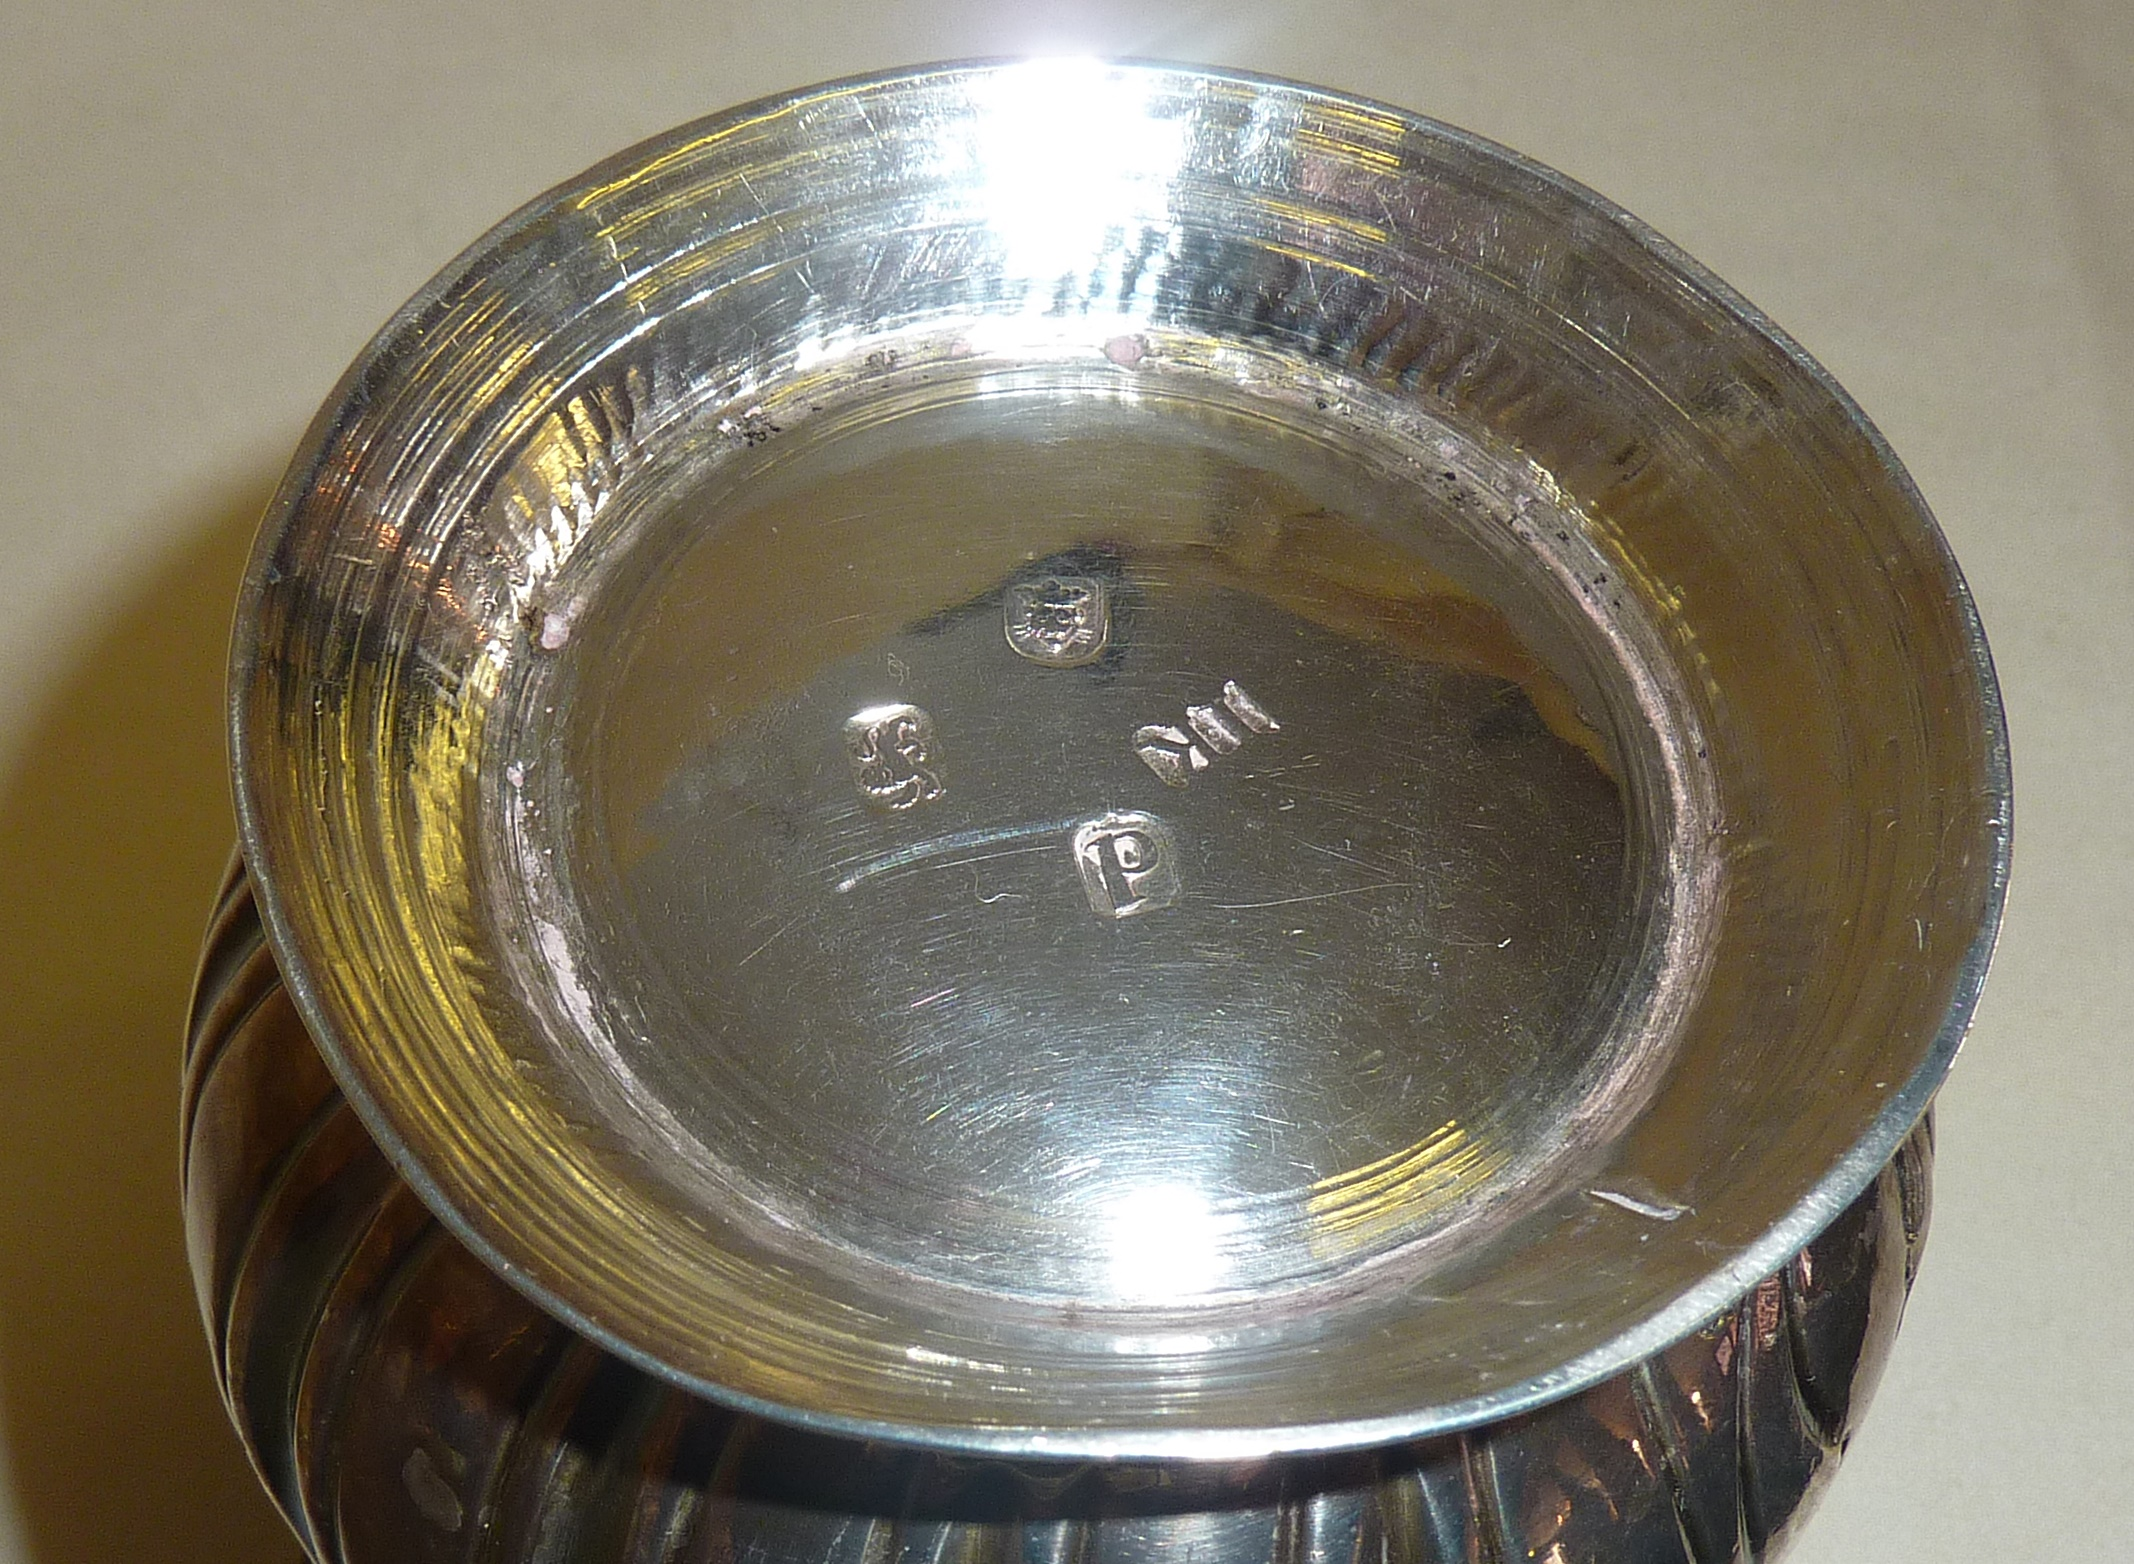 George III hallmarked silver porringer or loving cup with later engraved heraldic shield, by John - Image 3 of 3